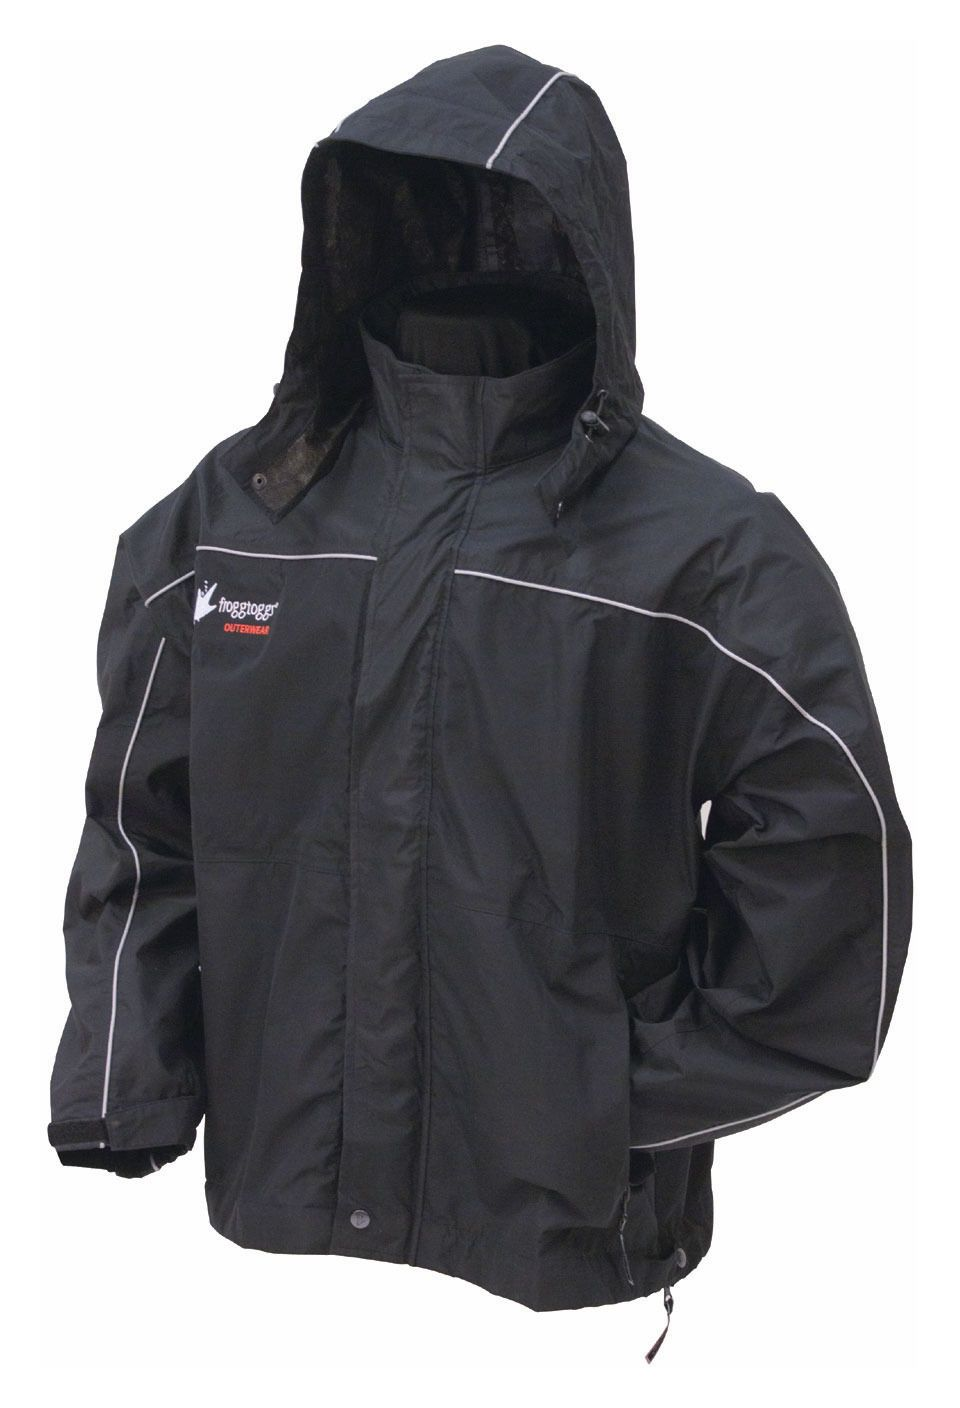 Frogg toggs highway toadz reflective jacket revzilla for Motor cycle rain gear